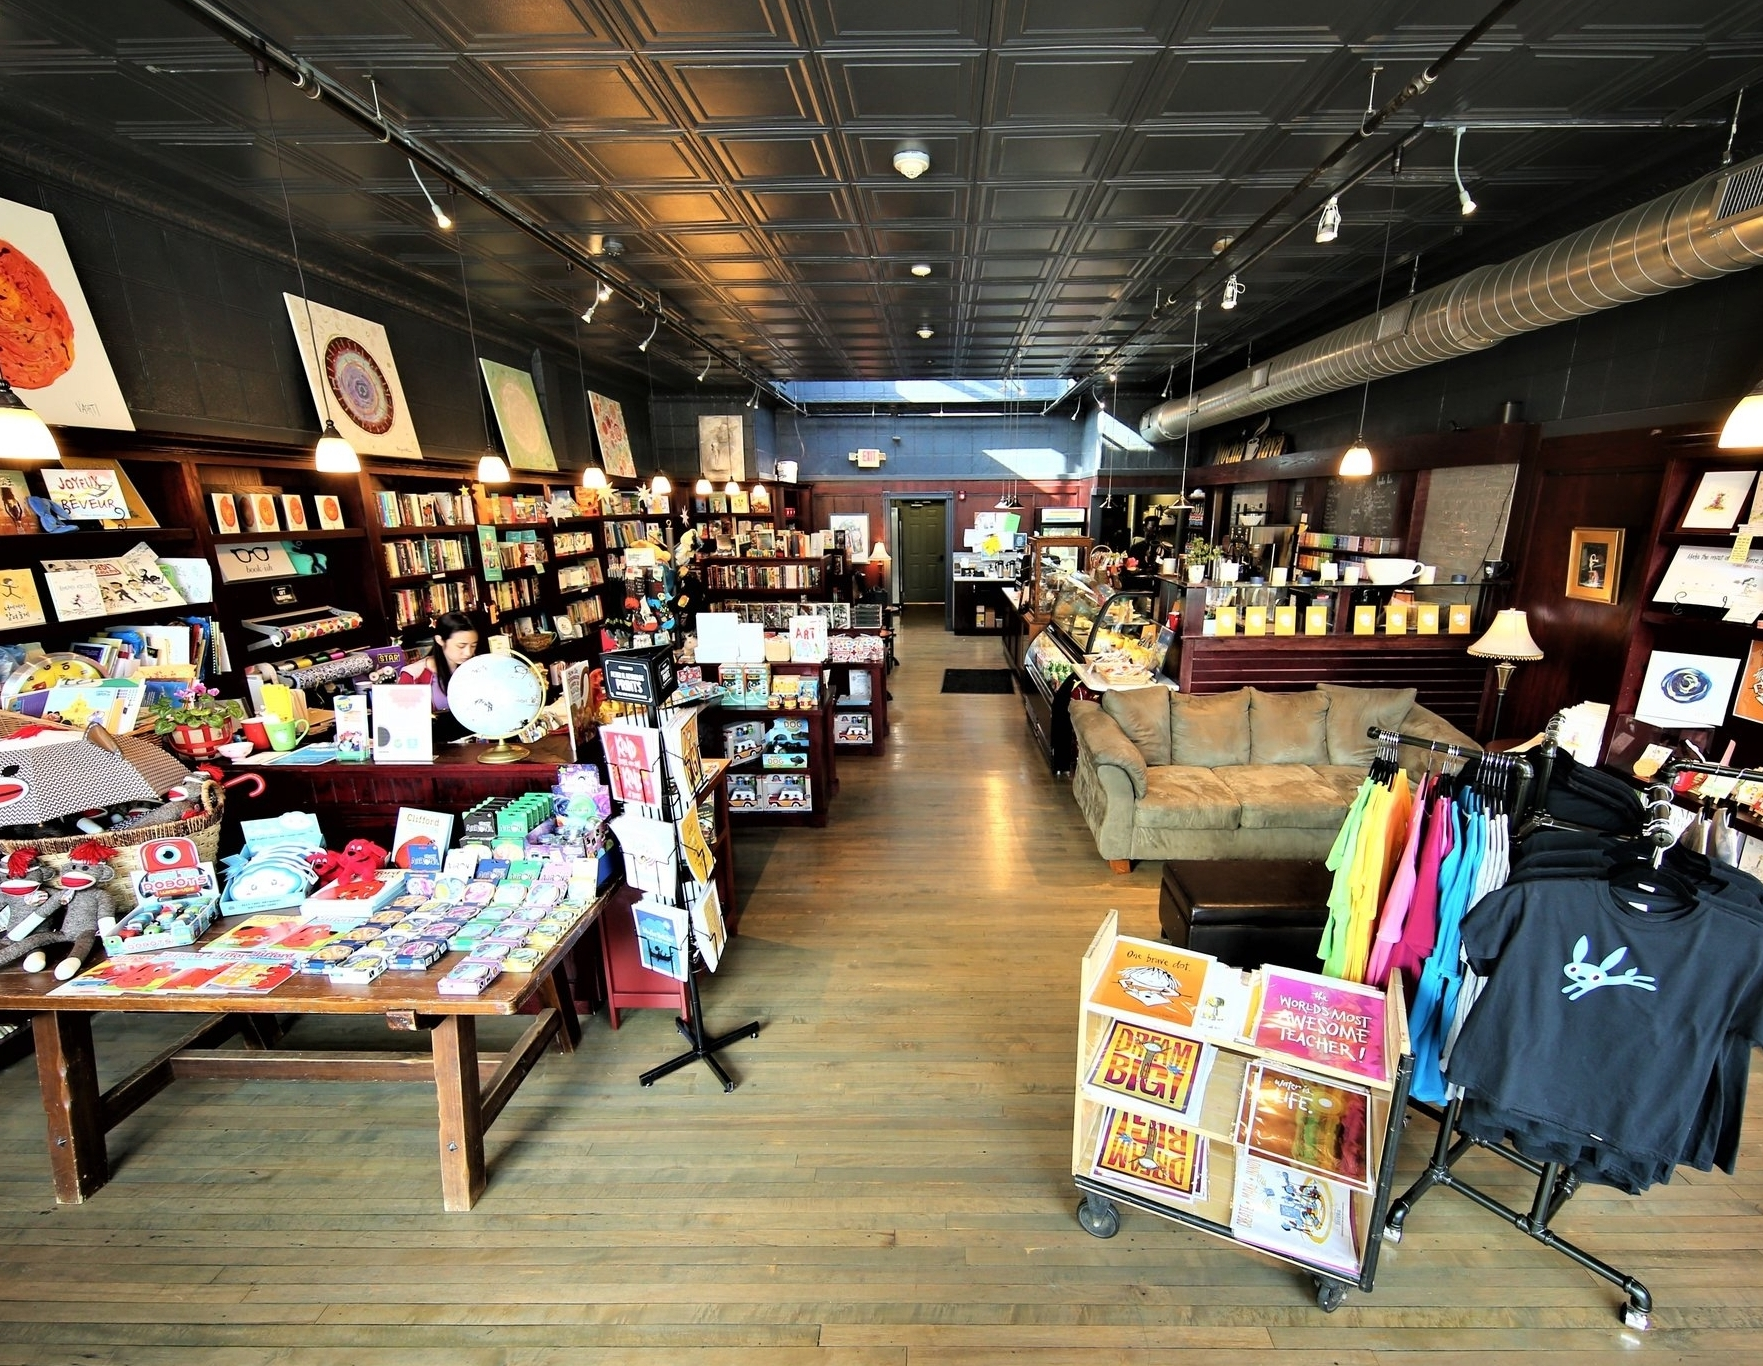 About the Shop - Peter opened his bookstore in Dedham in 2003 to fix a glaring problem: there was no bookshop in his hometown! The shop, packed with books, toys, games, and art supplies, was originally only 800 square feet and called The Blue Bunny after local famed Dedham pottery. Eventually the shop moved down the block to a larger space, and two years ago a cafe was incorporated - coffee and books - the perfect combination! The shop is now managed by his daughter, Sarah Reynolds.